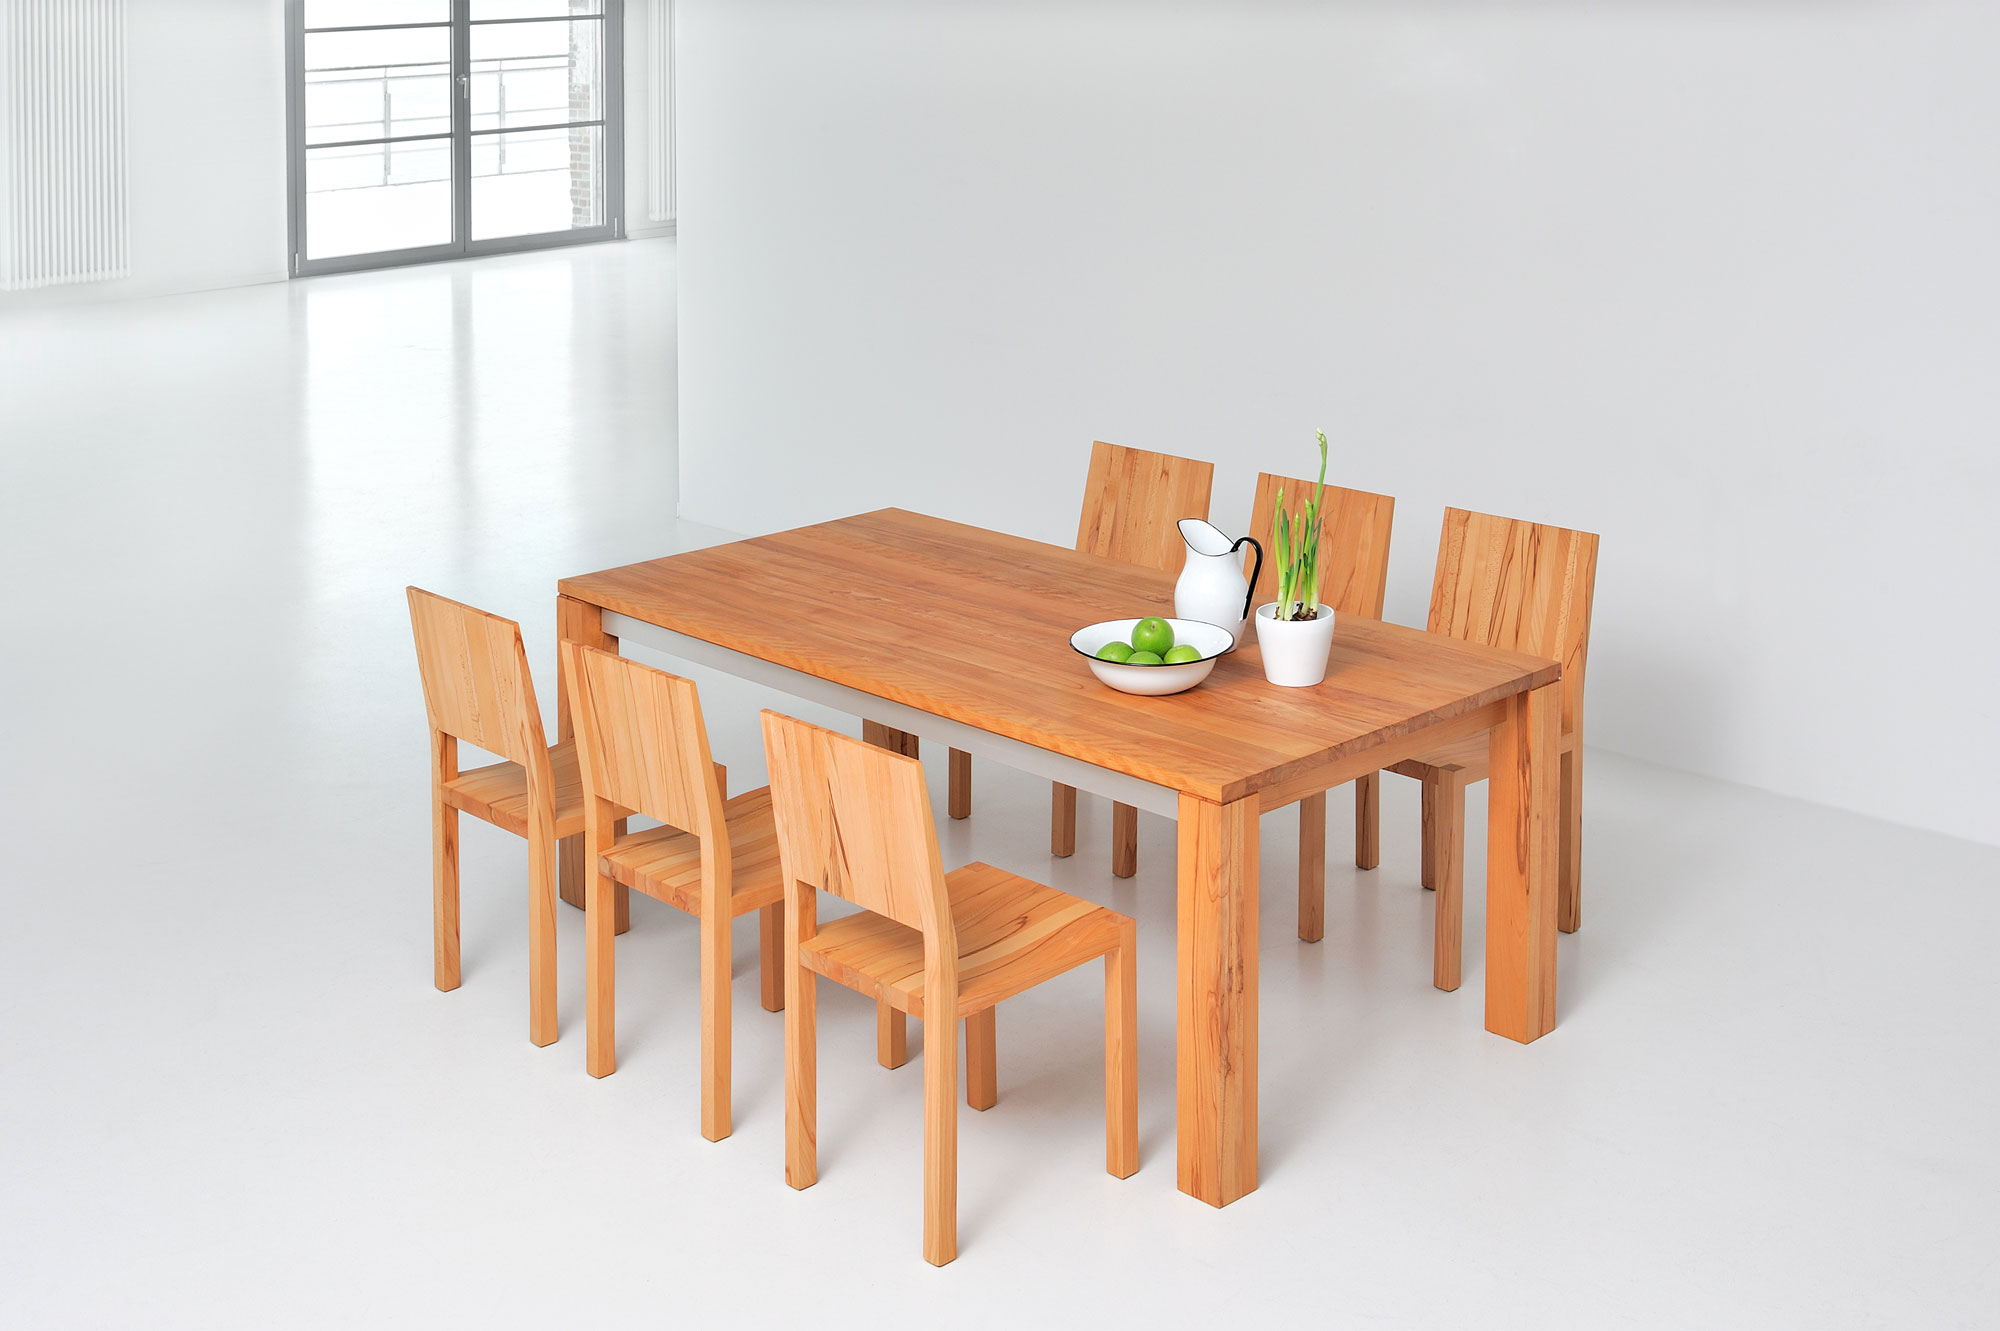 Extendable Dining Table AMBER BUTTERFLY A32726 custom made in solid wood by vitamin design